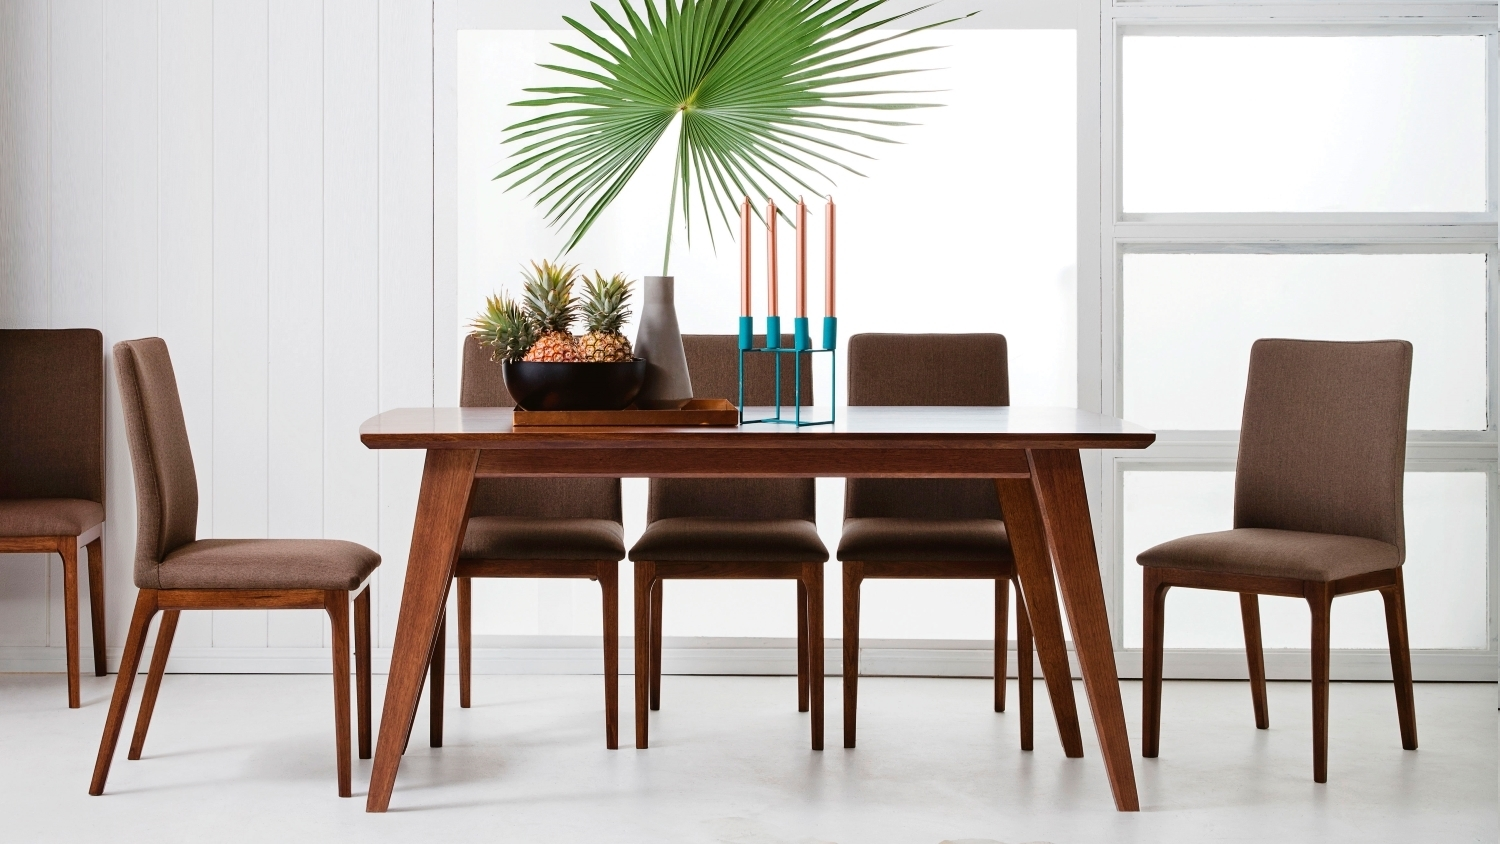 Buy Laren 7 Piece Dining Setting | Domayne Au Regarding Most Current Laurent 7 Piece Rectangle Dining Sets With Wood And Host Chairs (Image 5 of 20)